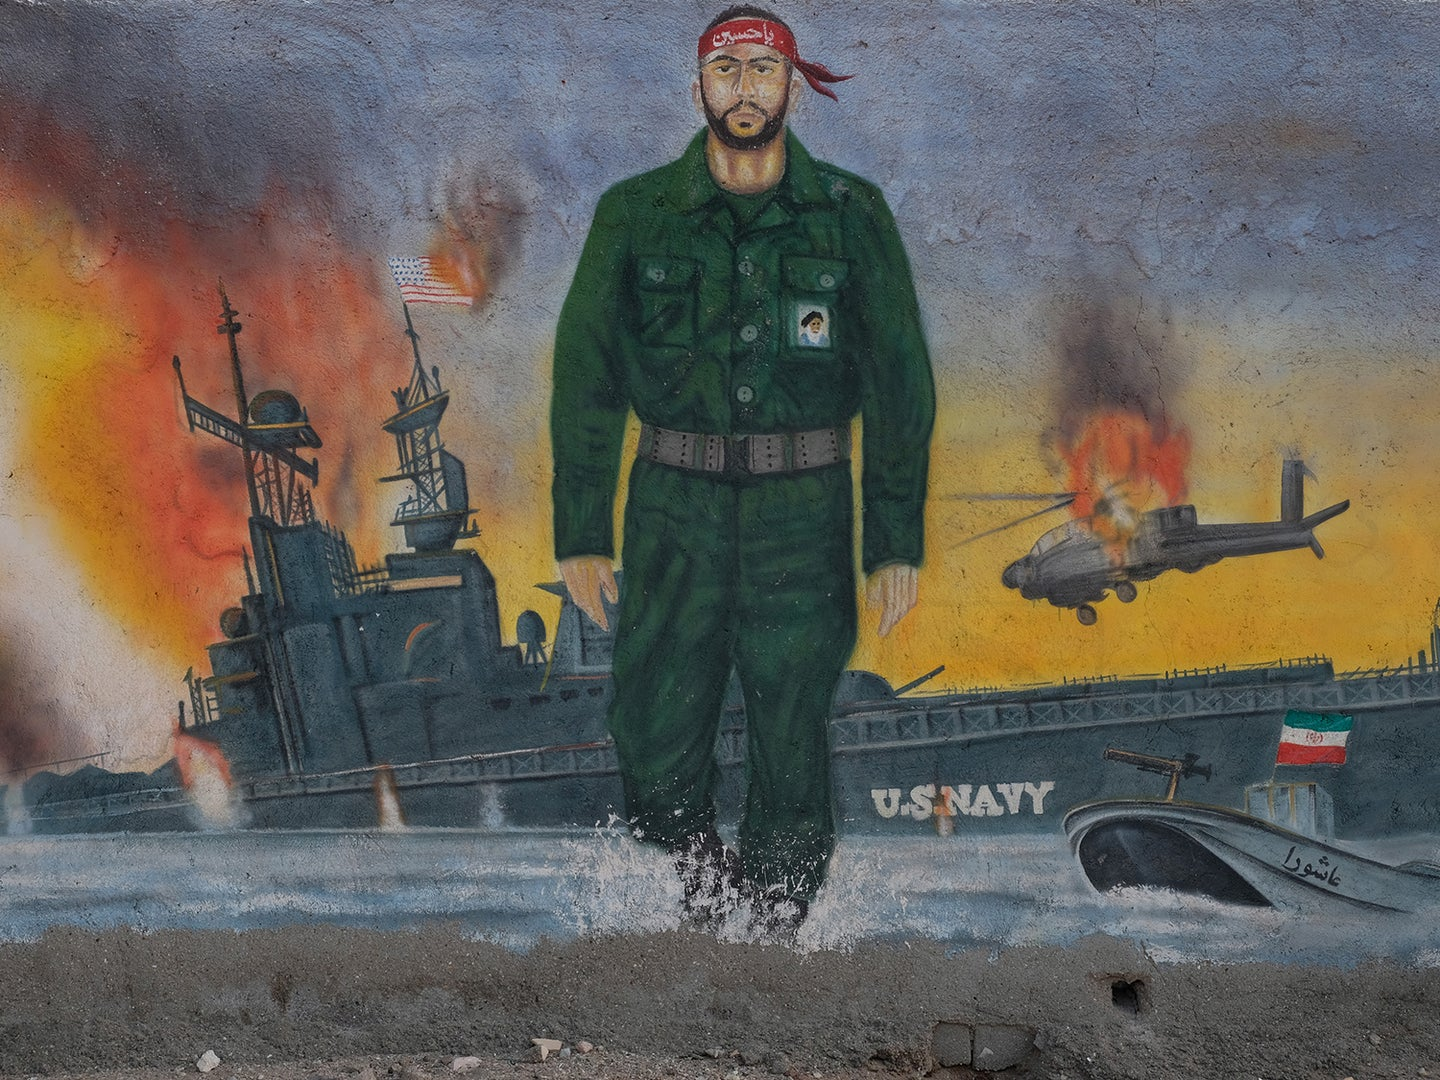 A mural depicts the past conflicts between Iran's revolutionary guards and U.S. navy in the Strait of Hormuz on May 2, 2017 in Hormuz Island, Iran